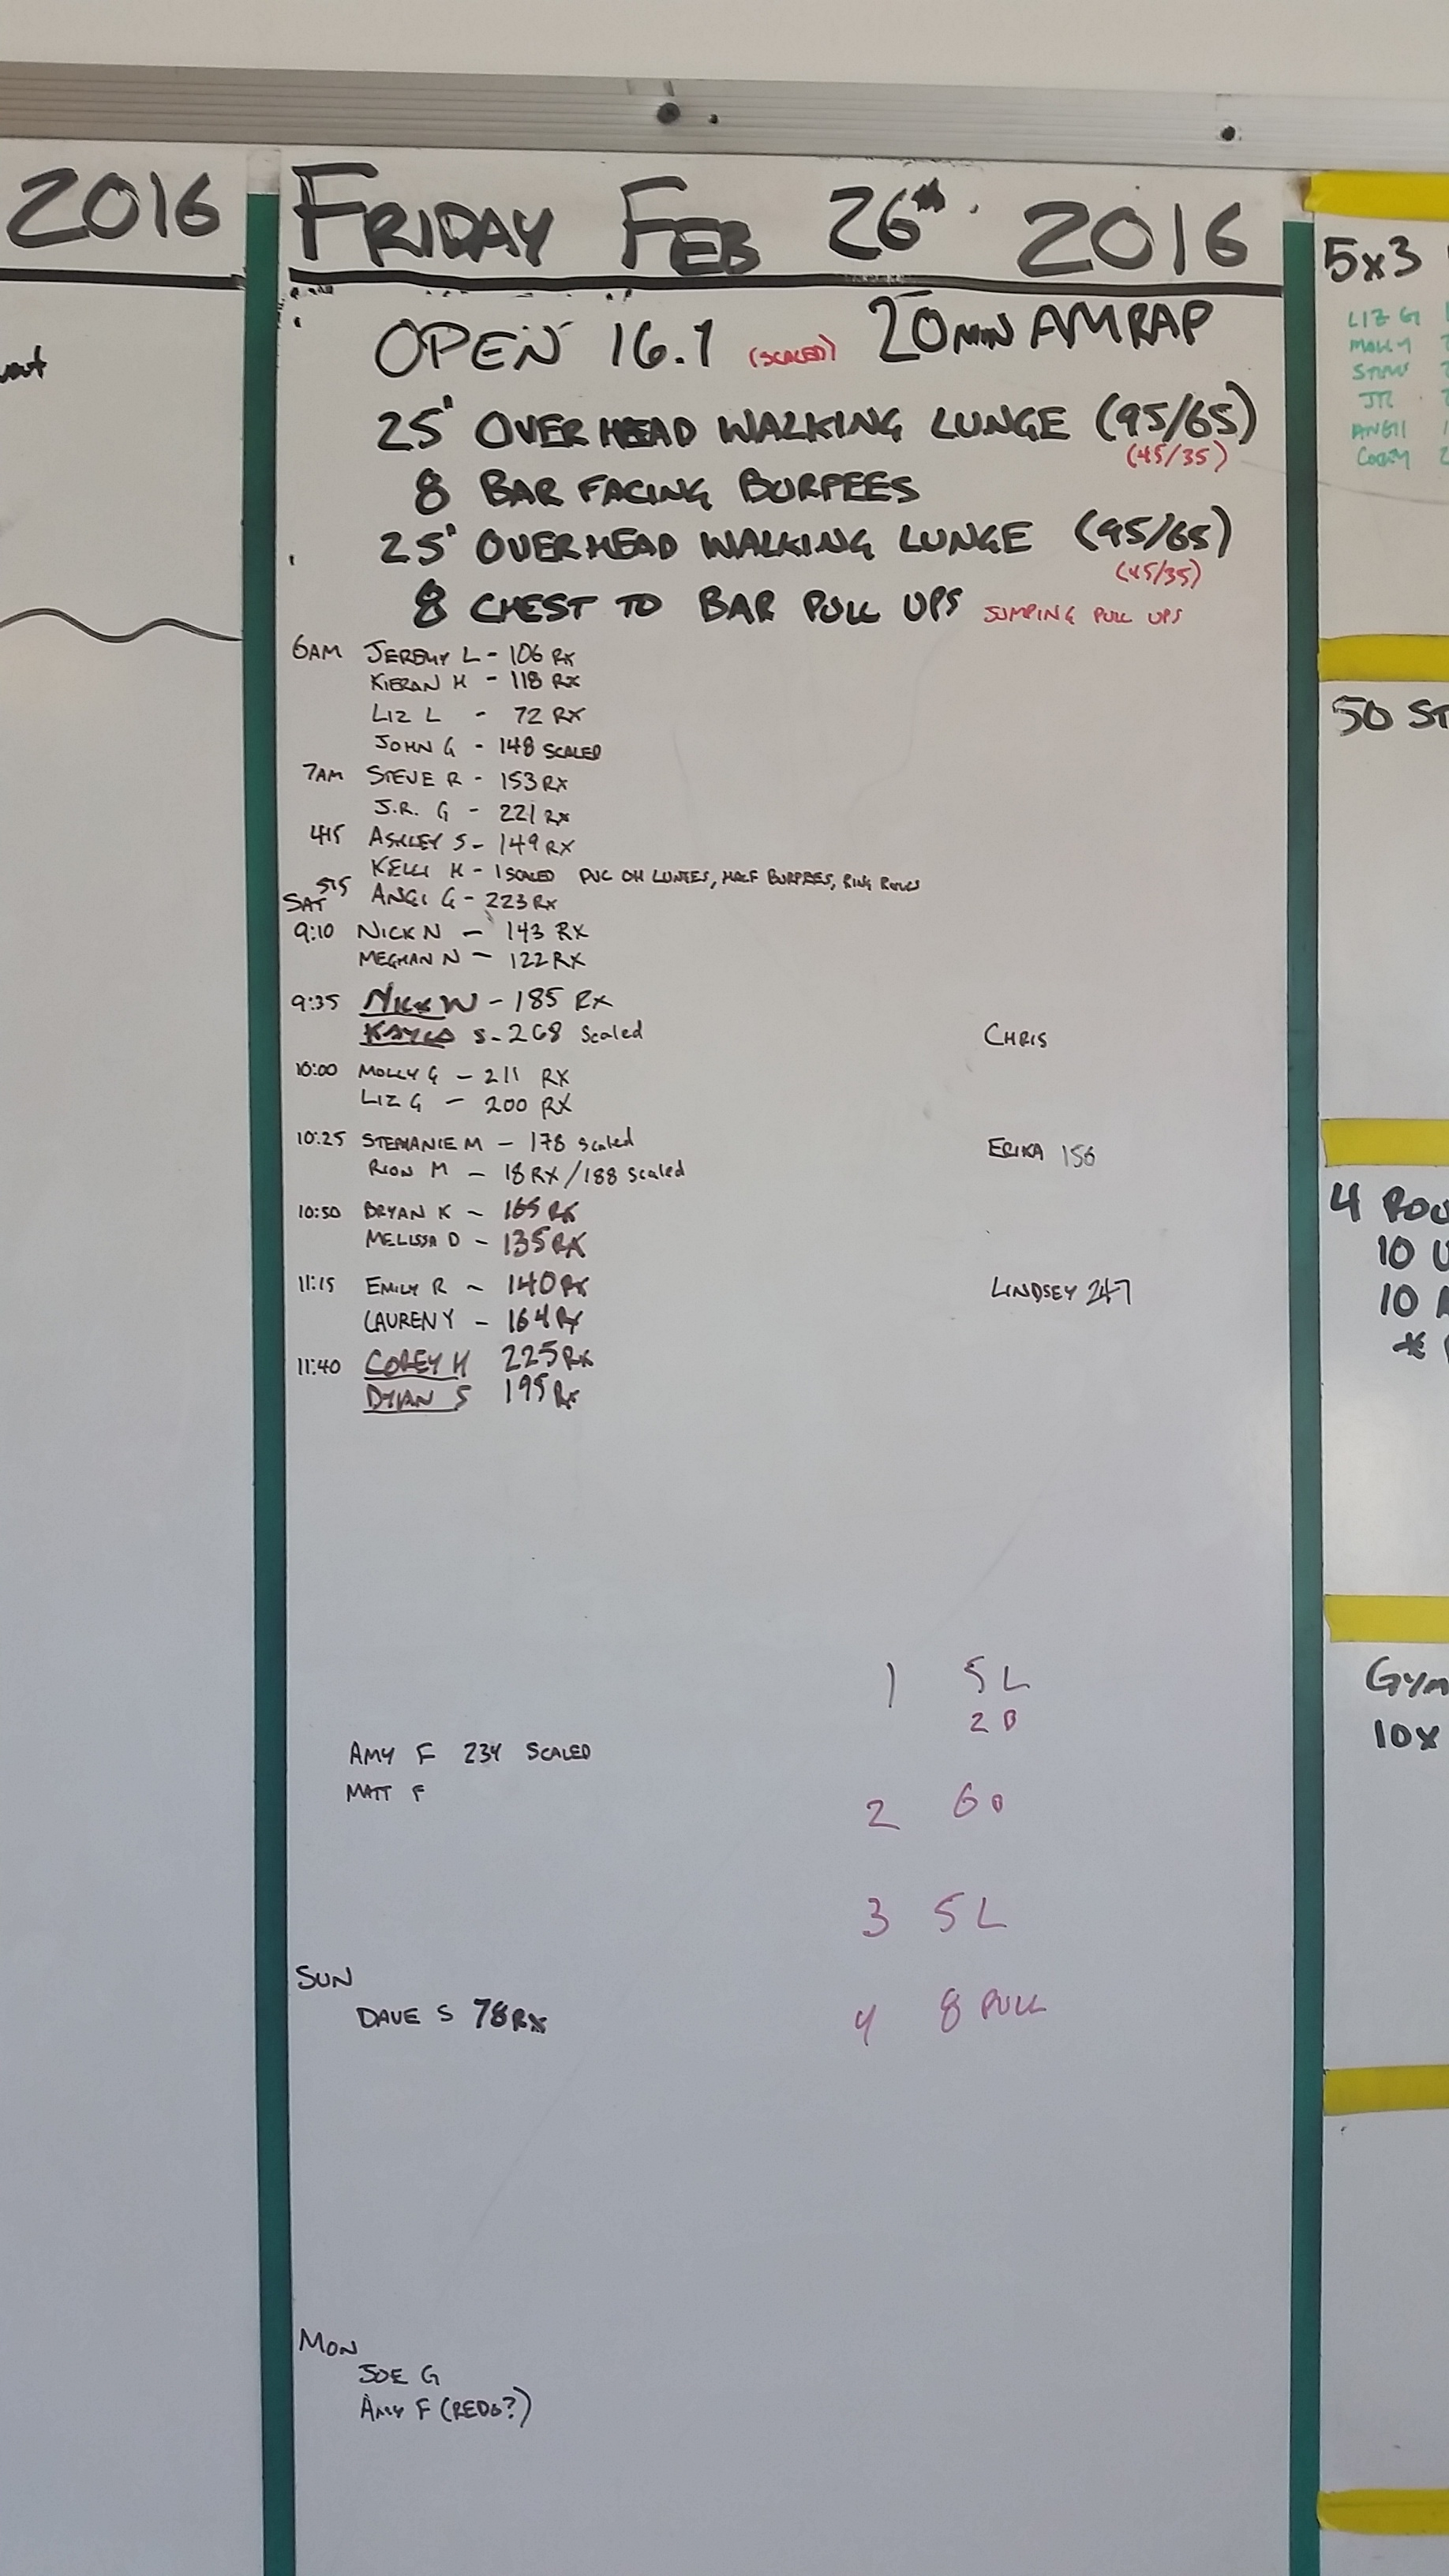 20160226 CrossFit Craft BENCHMARK OPEN 16.1 Overhead Walking Lunge Bar Facing Burpees Chest to Bar Pull Ups